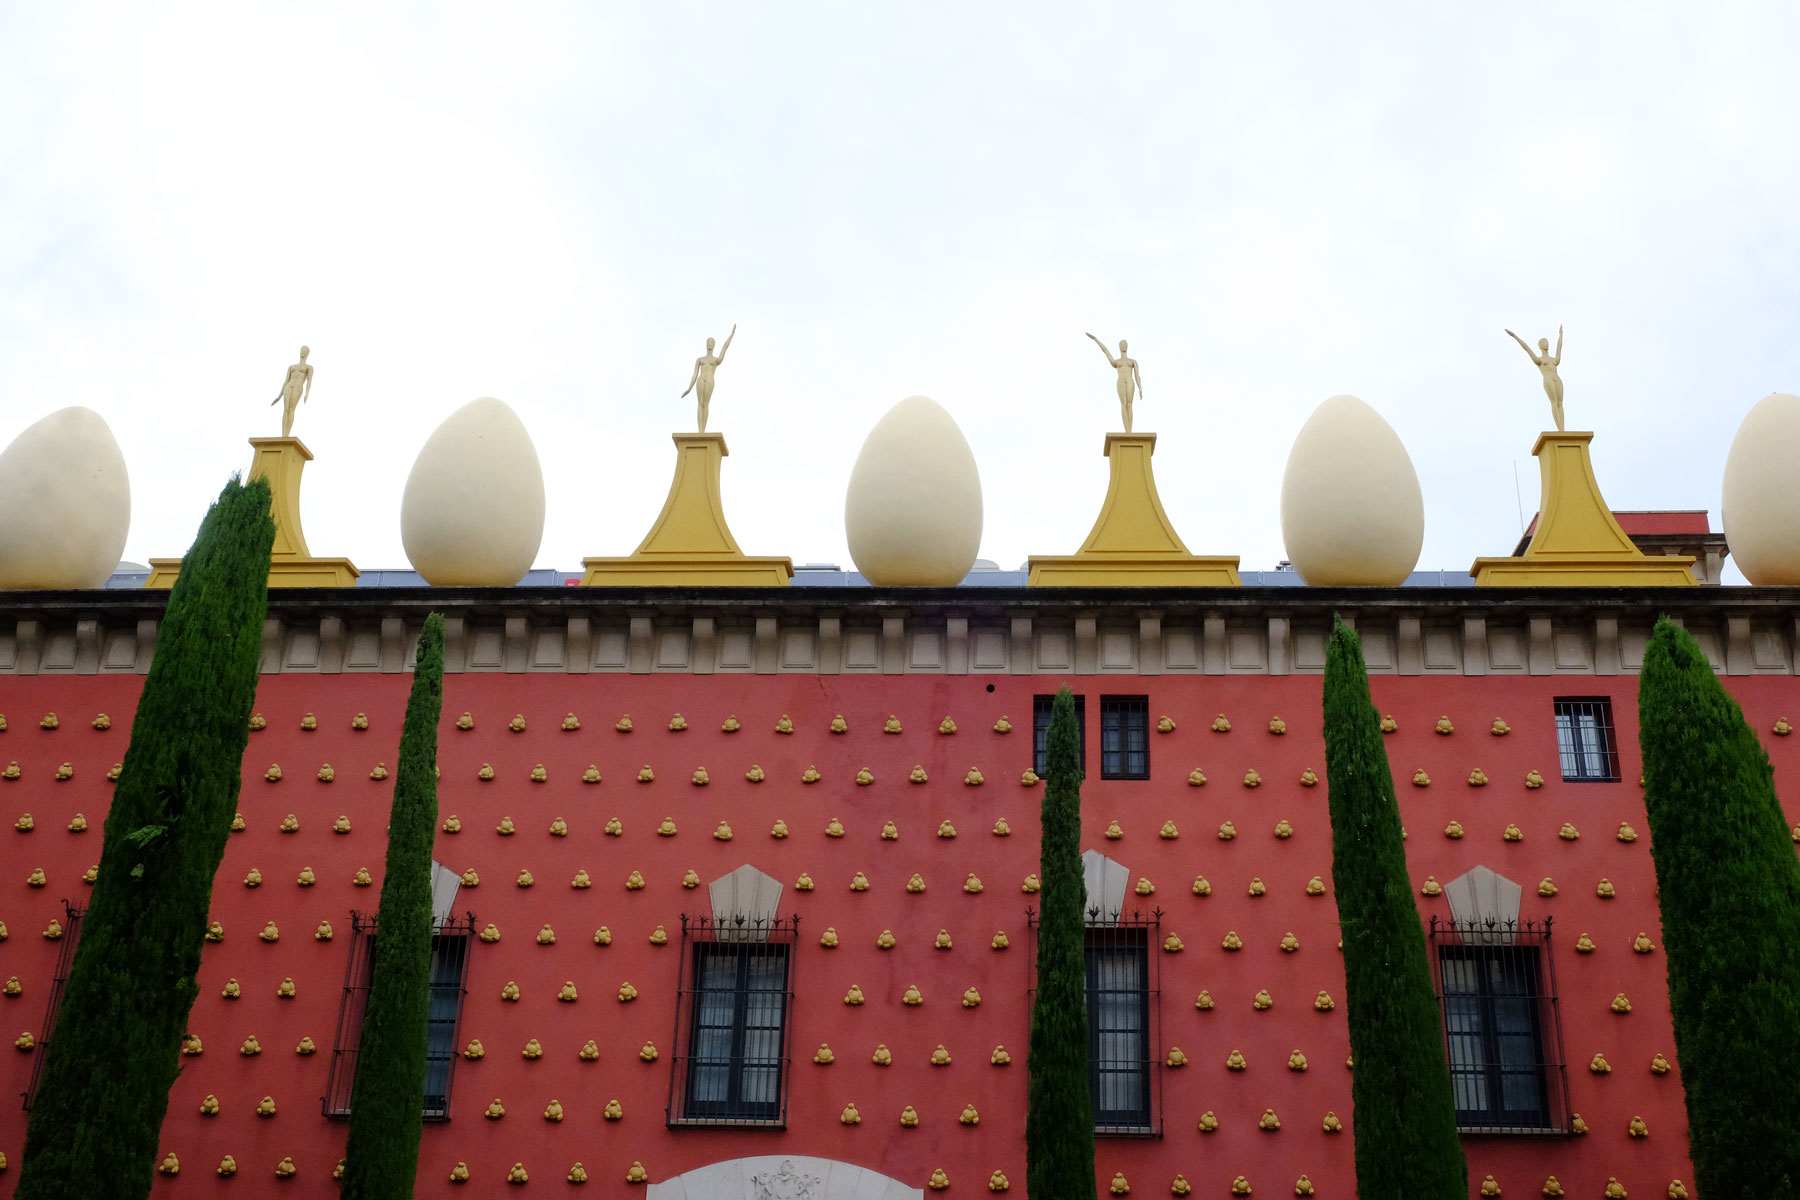 Day trip from Barcelona - Dali Museum in Figueres